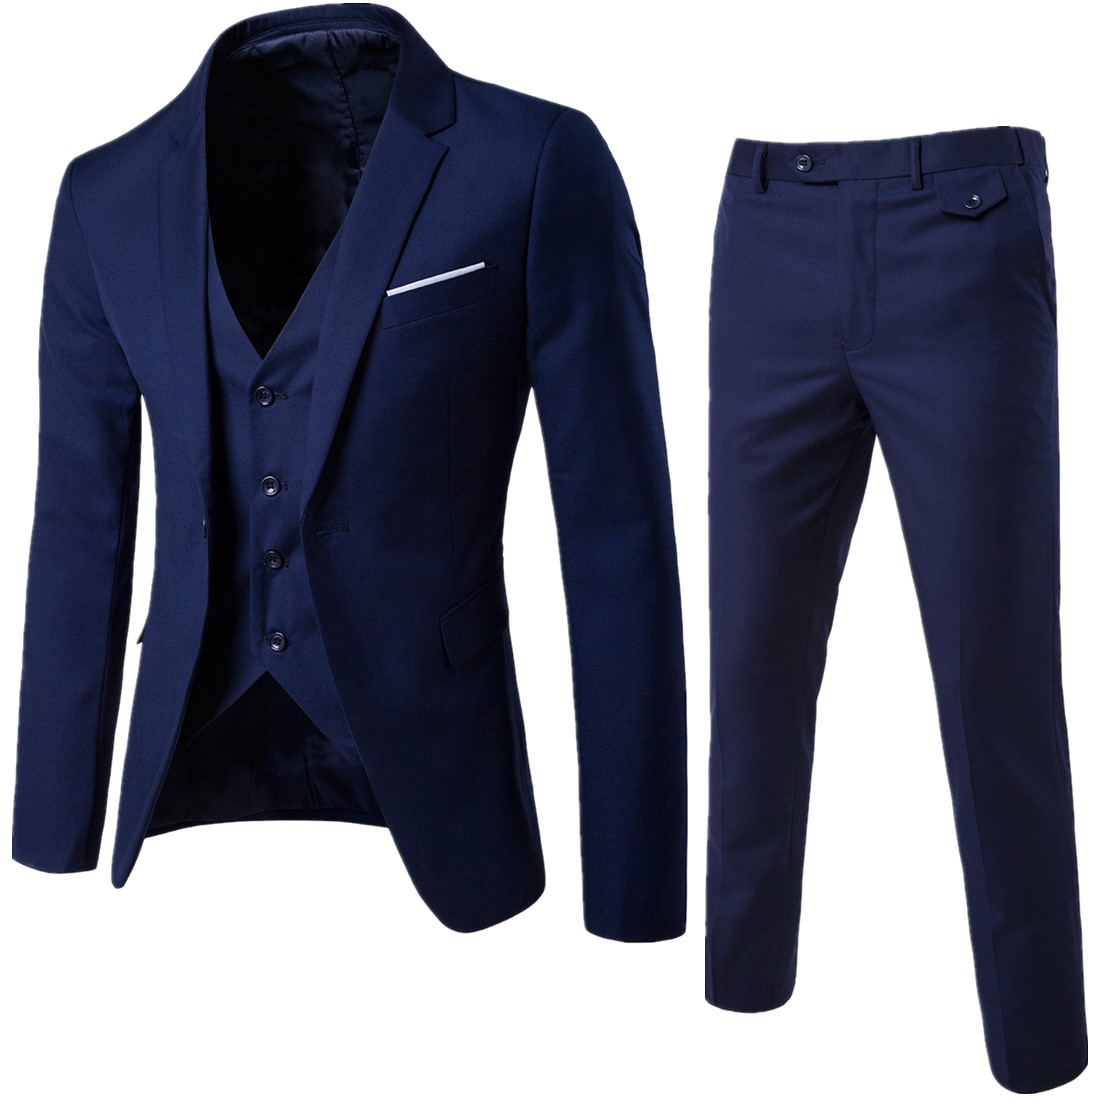 <font><b>Mens</b></font> <font><b>Wedding</b></font> <font><b>Suits</b></font> <font><b>2018</b></font> Red <font><b>Suits</b></font> <font><b>Mens</b></font> Oranje Pak Heren Royal Blue <font><b>Mens</b></font> <font><b>Suits</b></font> Party DJ Stage Costume <font><b>Terno</b></font> Slim Fit White Tuxedo image